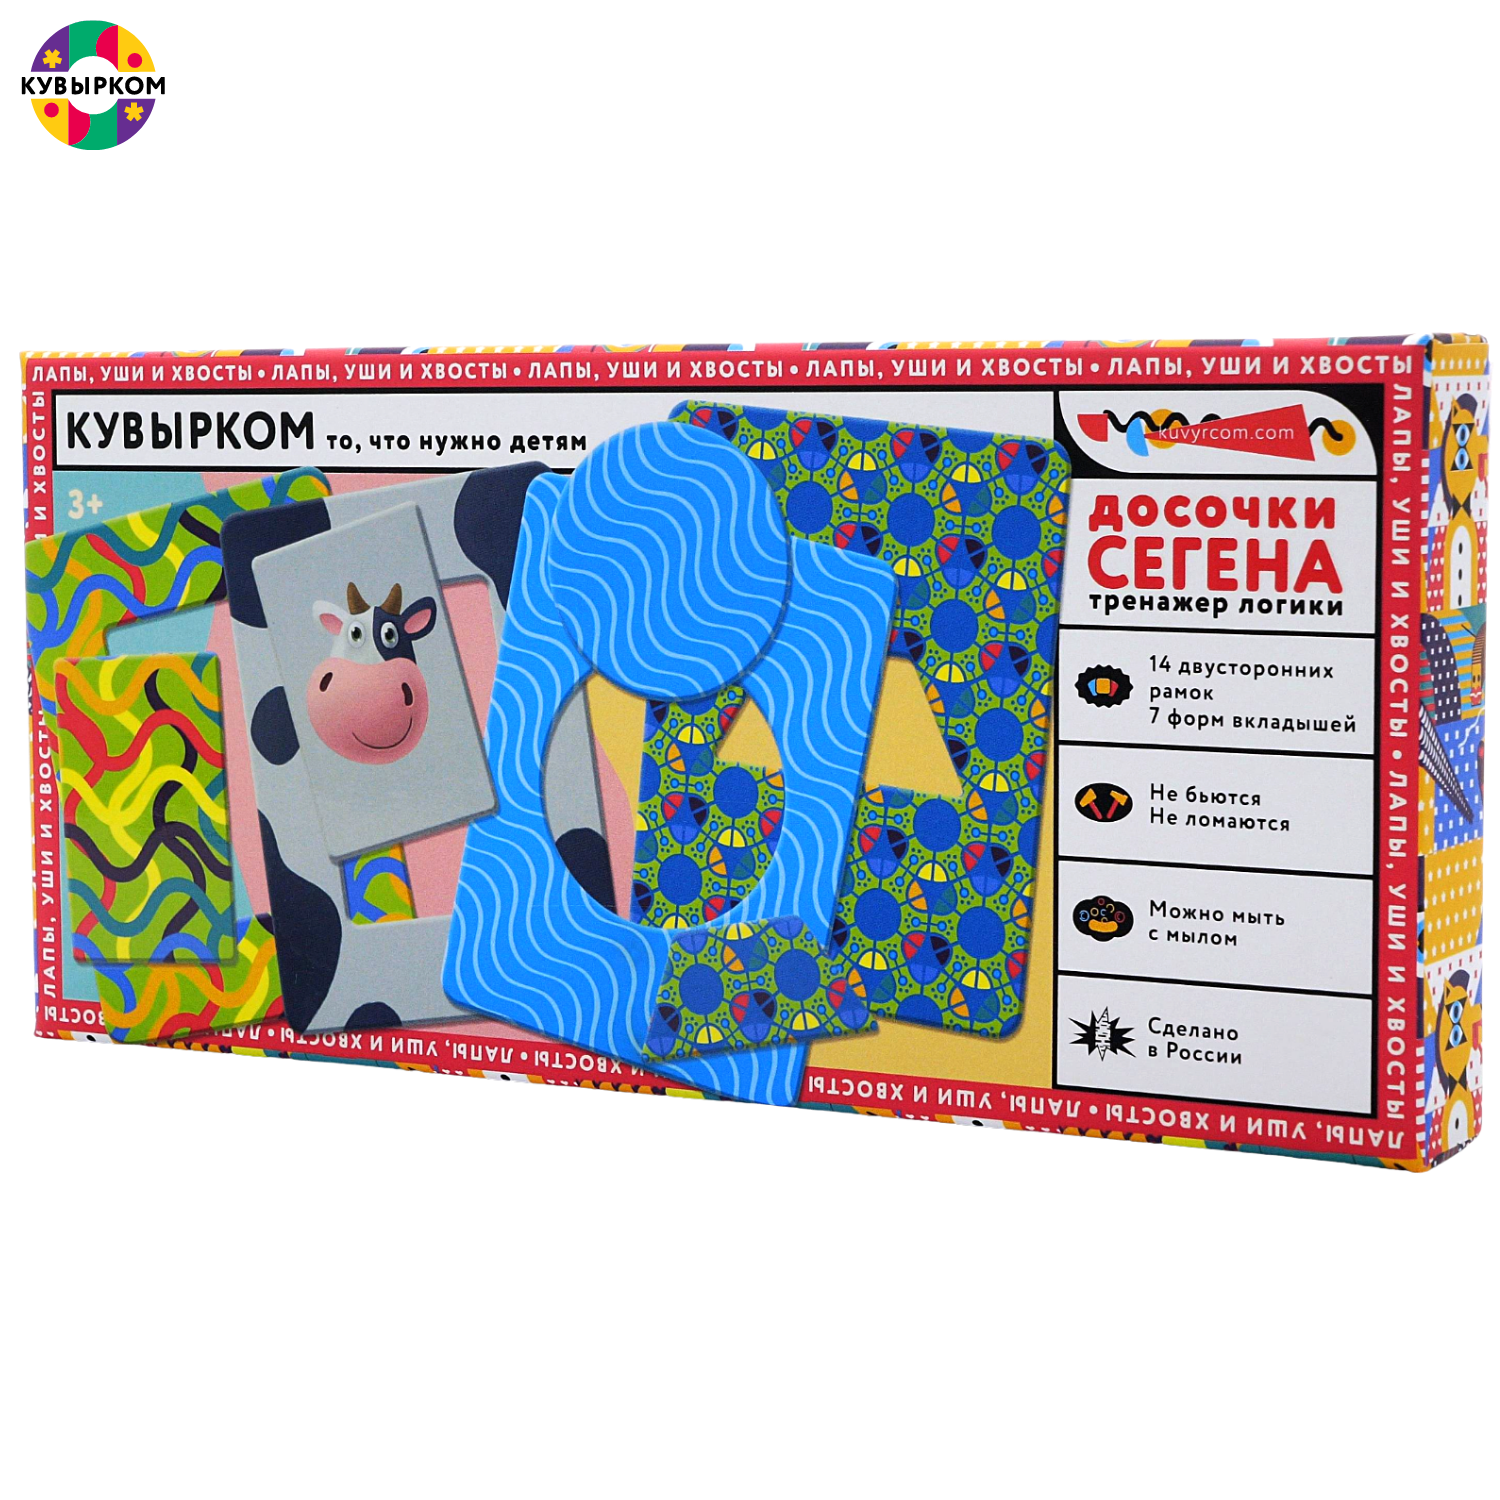 Tumbling / Educational game SEGENA BOARDS, 14 double-sided frames and inserts, do not break, can be washed